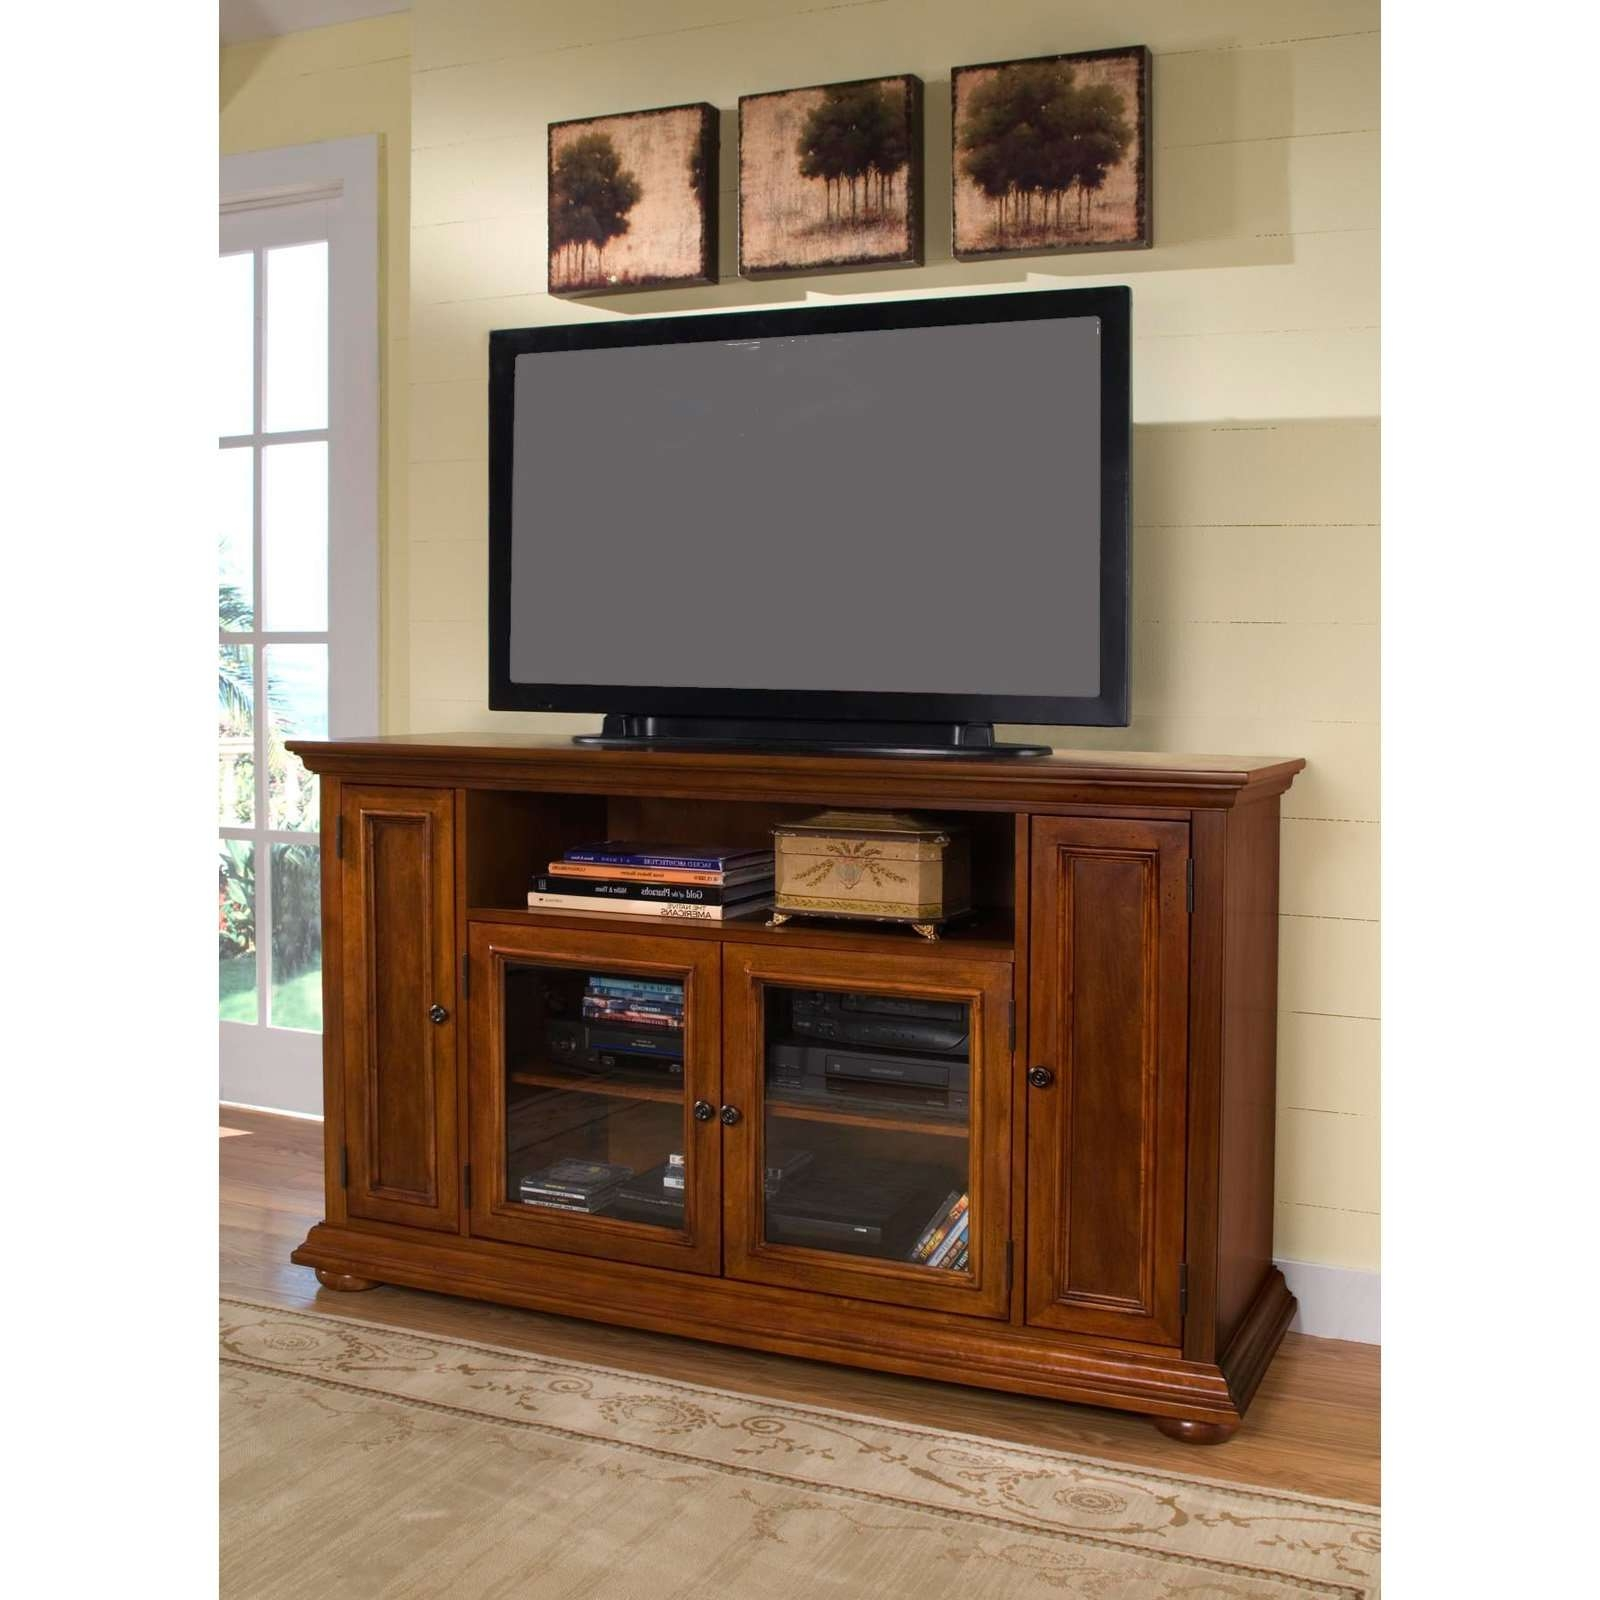 Rectangle Black Flat Screen Tv Over Brown Wooden Cabinet With For Wooden Tv Cabinets With Glass Doors (View 10 of 20)